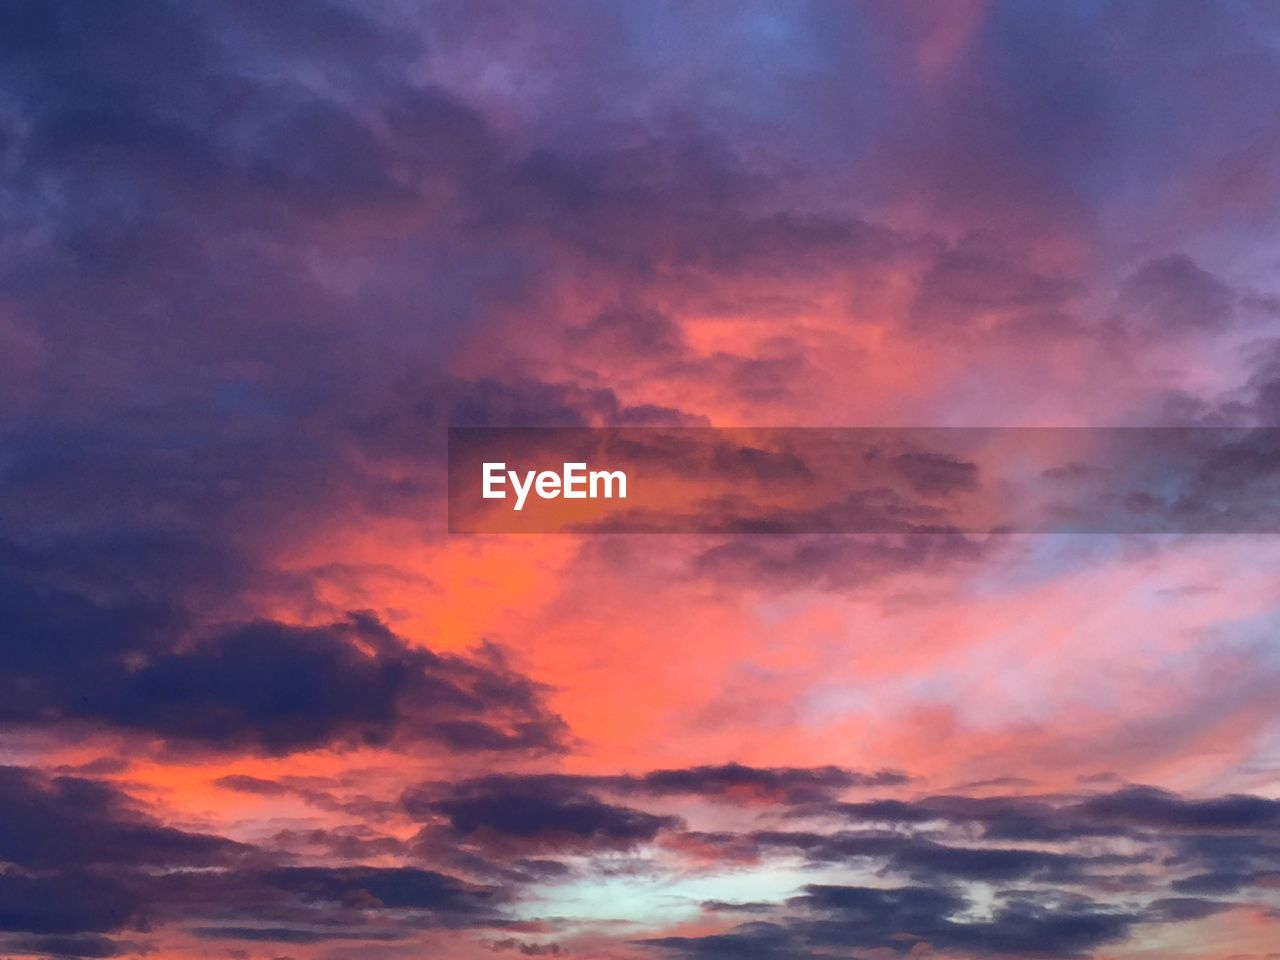 sunset, beauty in nature, nature, scenics, sky, dramatic sky, cloud - sky, tranquil scene, majestic, tranquility, orange color, cloudscape, idyllic, low angle view, weather, sky only, no people, multi colored, backgrounds, outdoors, environment, awe, storm cloud, day